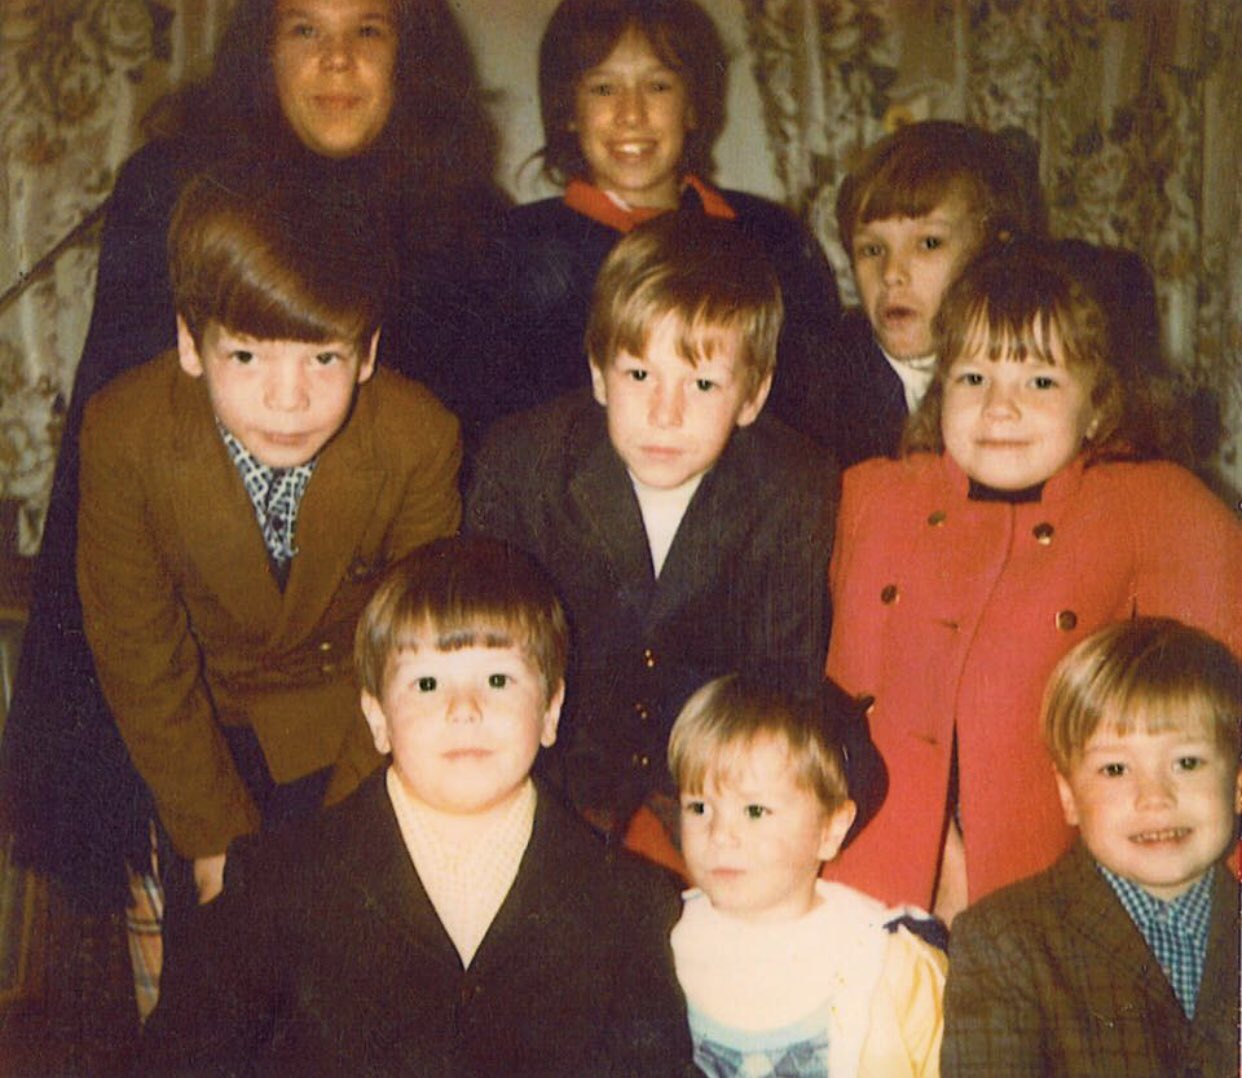 Robert Wahlberg with his nine siblings in his childhood days.